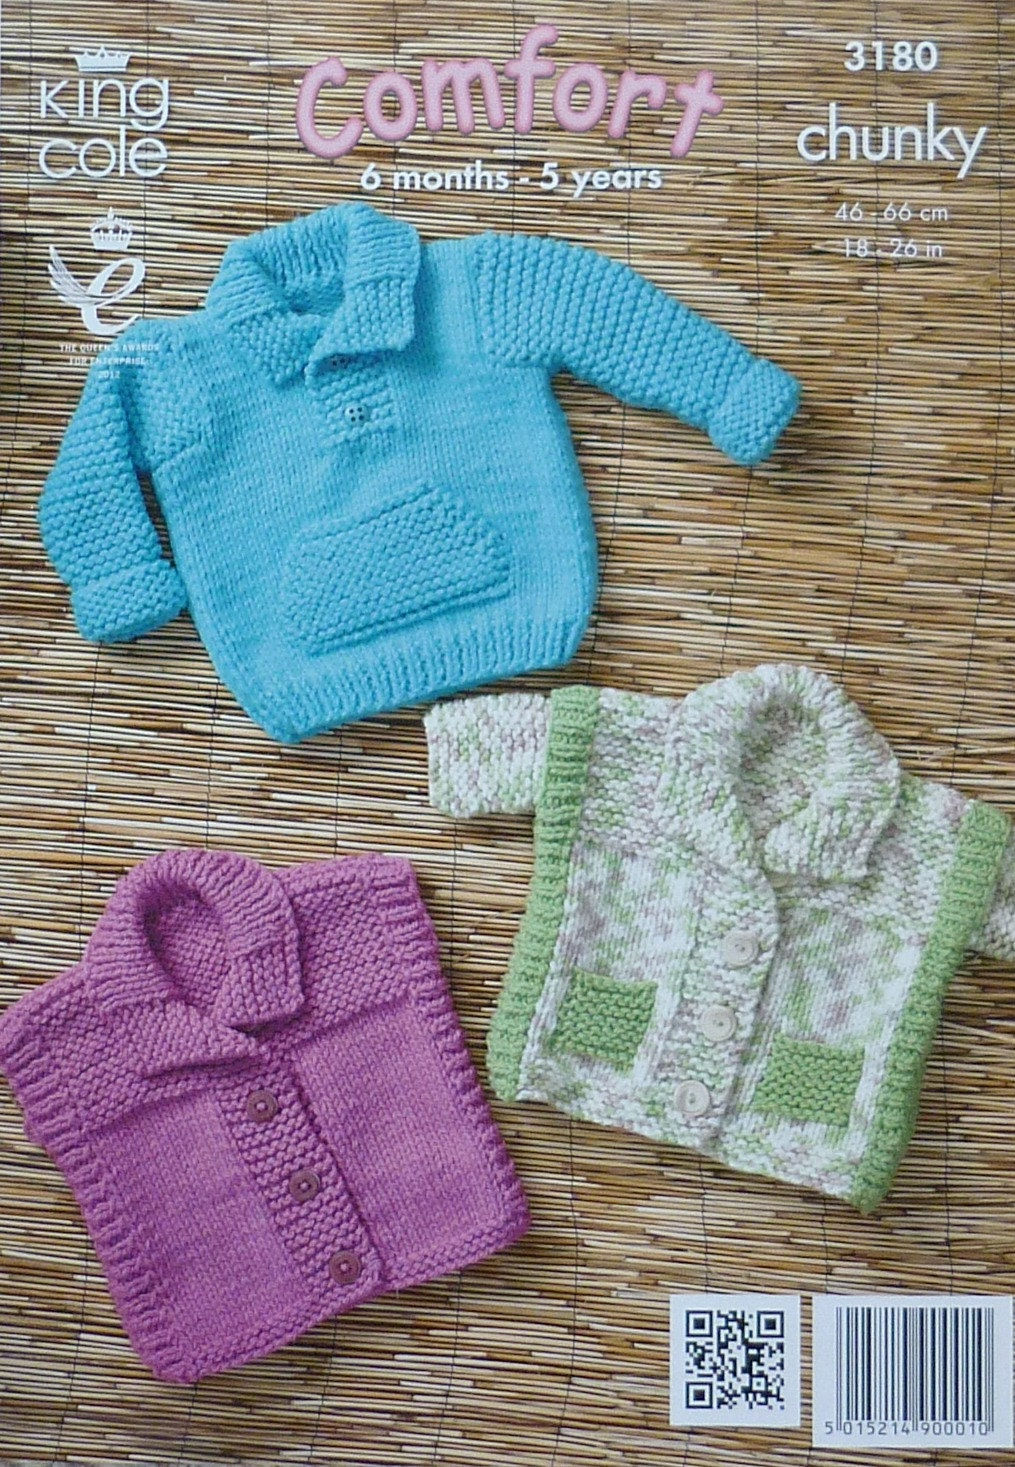 Knitting Patterns Childrens Jumpers : Childrens Knitting Pattern K3180 Childrens Easy Knit Jumper